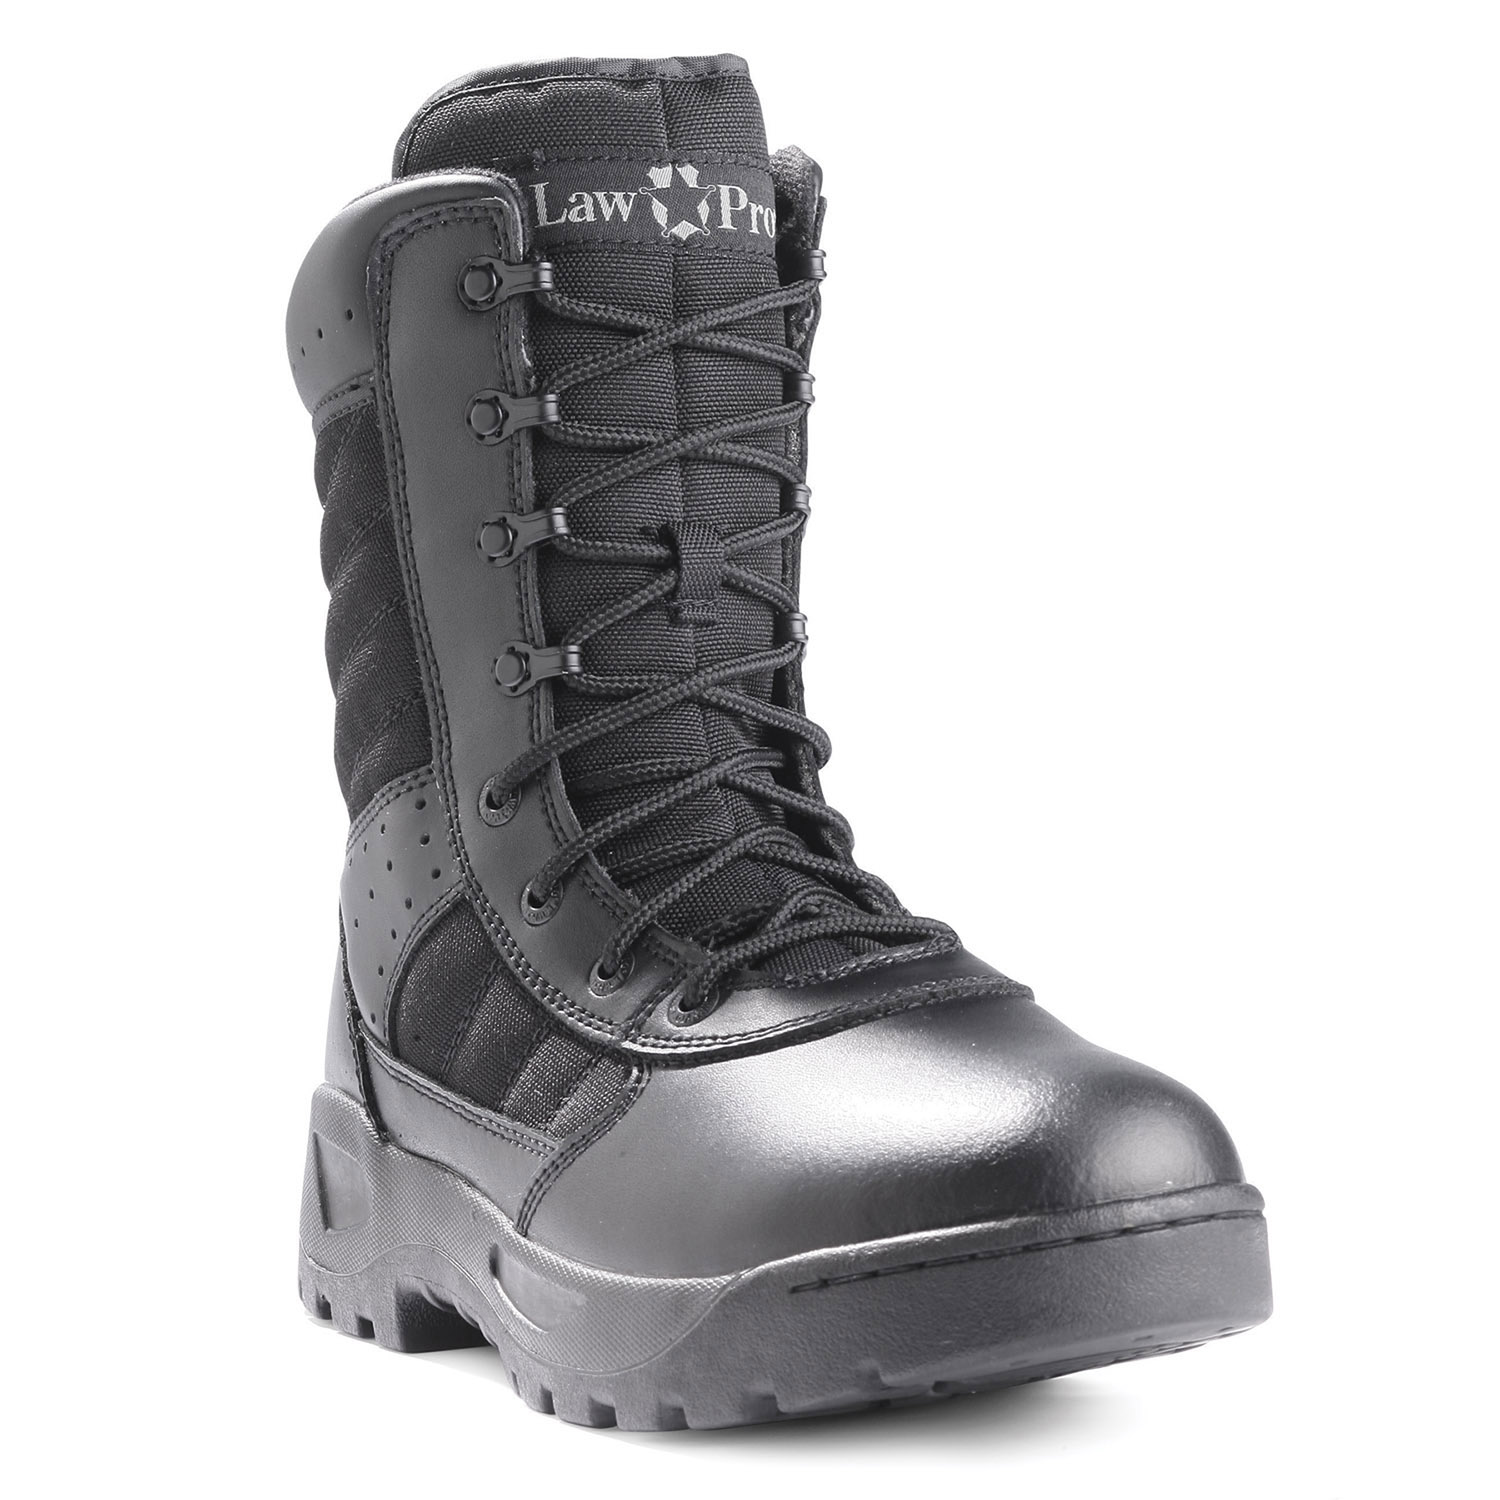 "LawPro 8"" Dispatch 2.0 Boot"